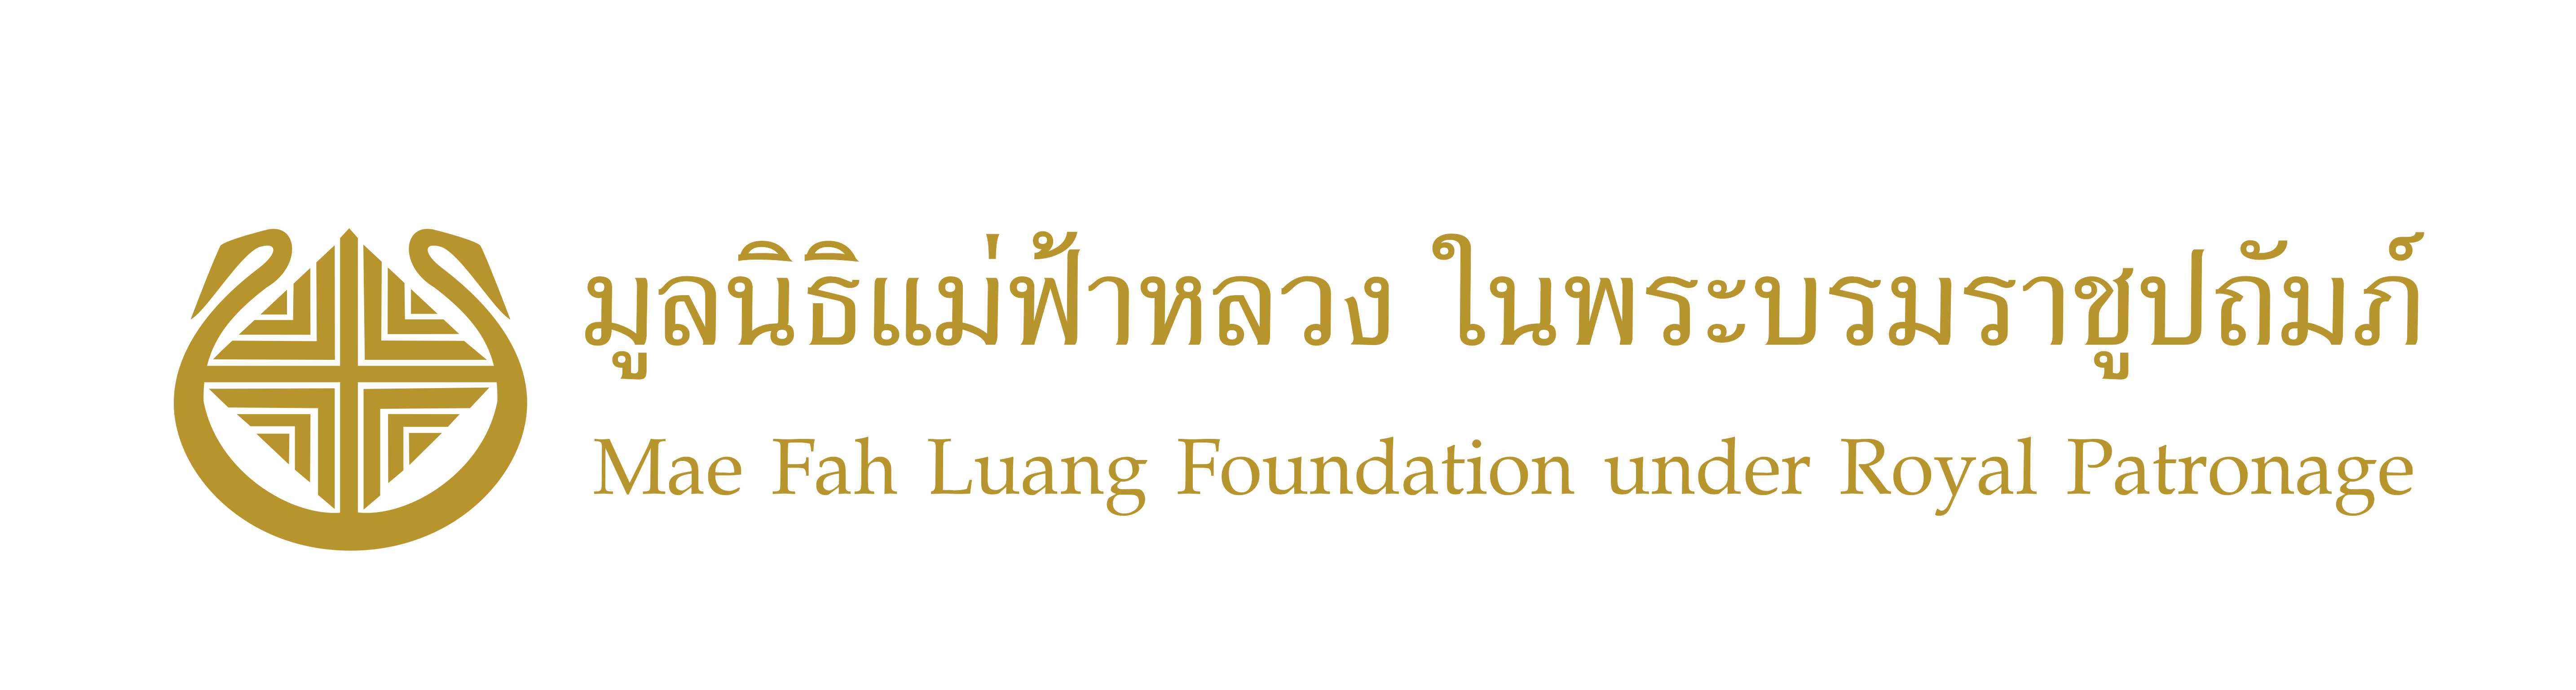 Mae Fah Luang Foundation under Royal Patronage